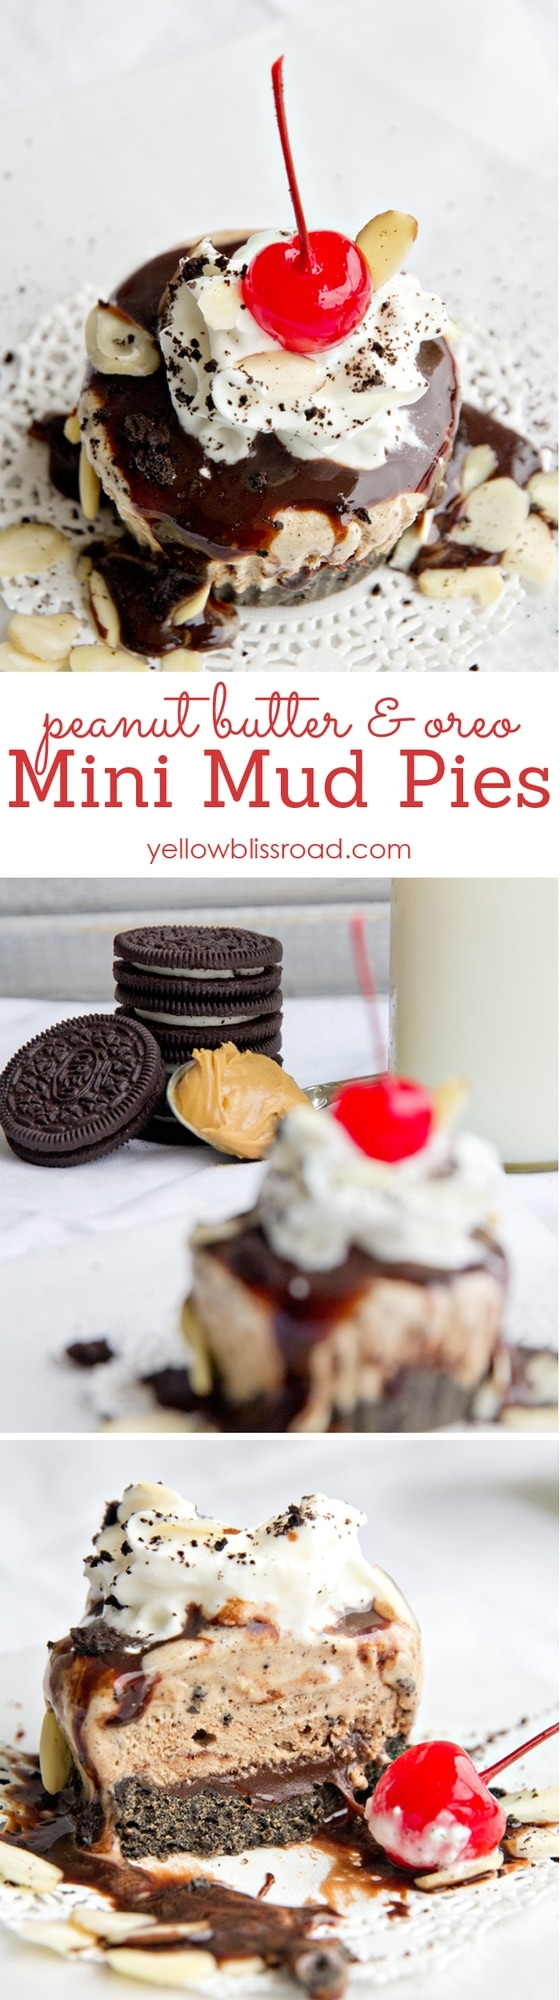 Peanut Butter and Oreo Mini Med Pies